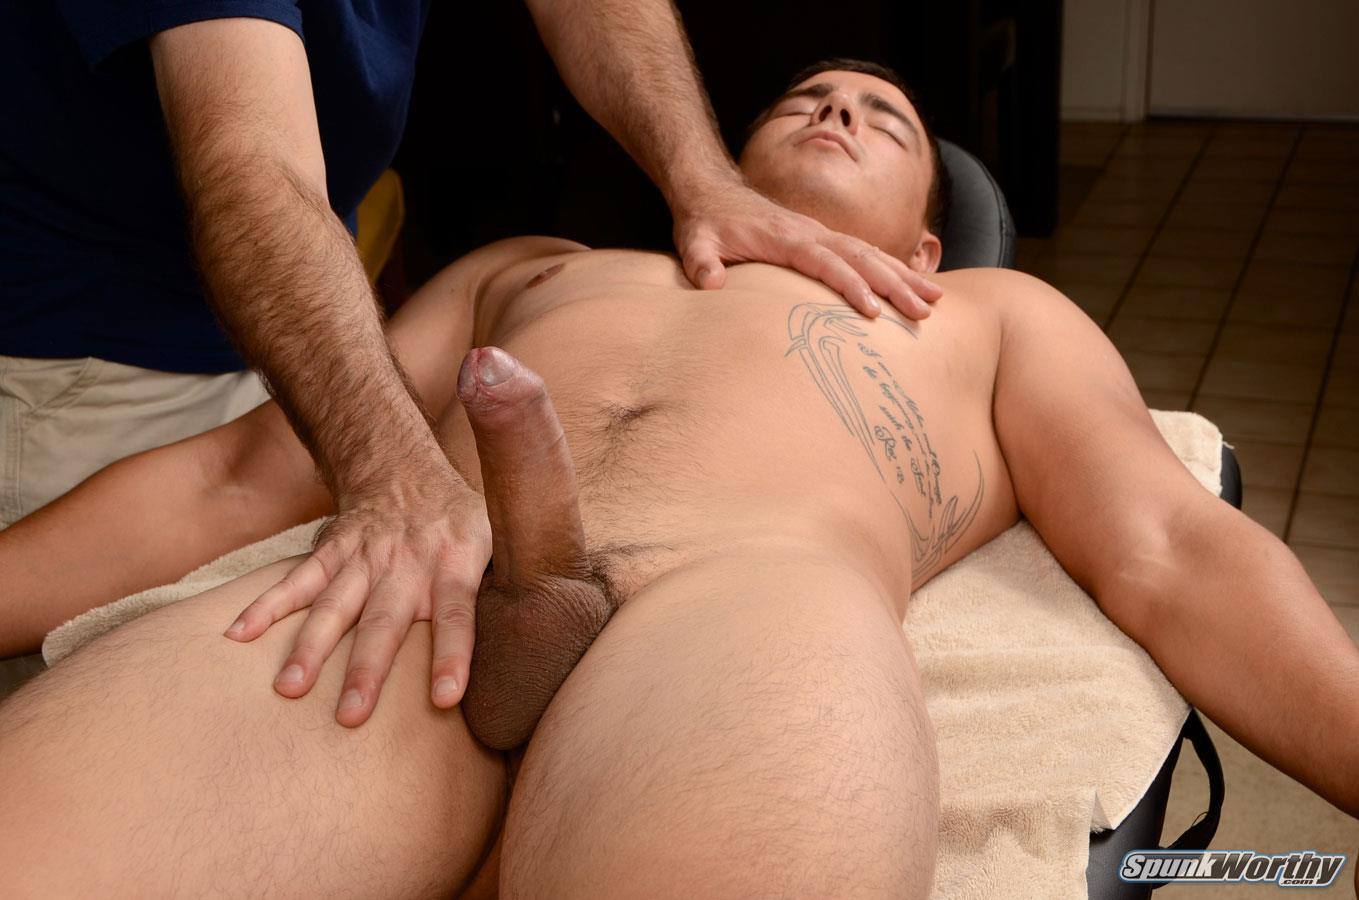 SpunkWorthy-Yuri-Straight-Marine-Getting-Massage-With-A-Happy-Ending-Big-Uncut-Cock-Amateur-Gay-Porn-13 Straight Uncut Marine Gets A Massage With A Happy Ending From A Guy